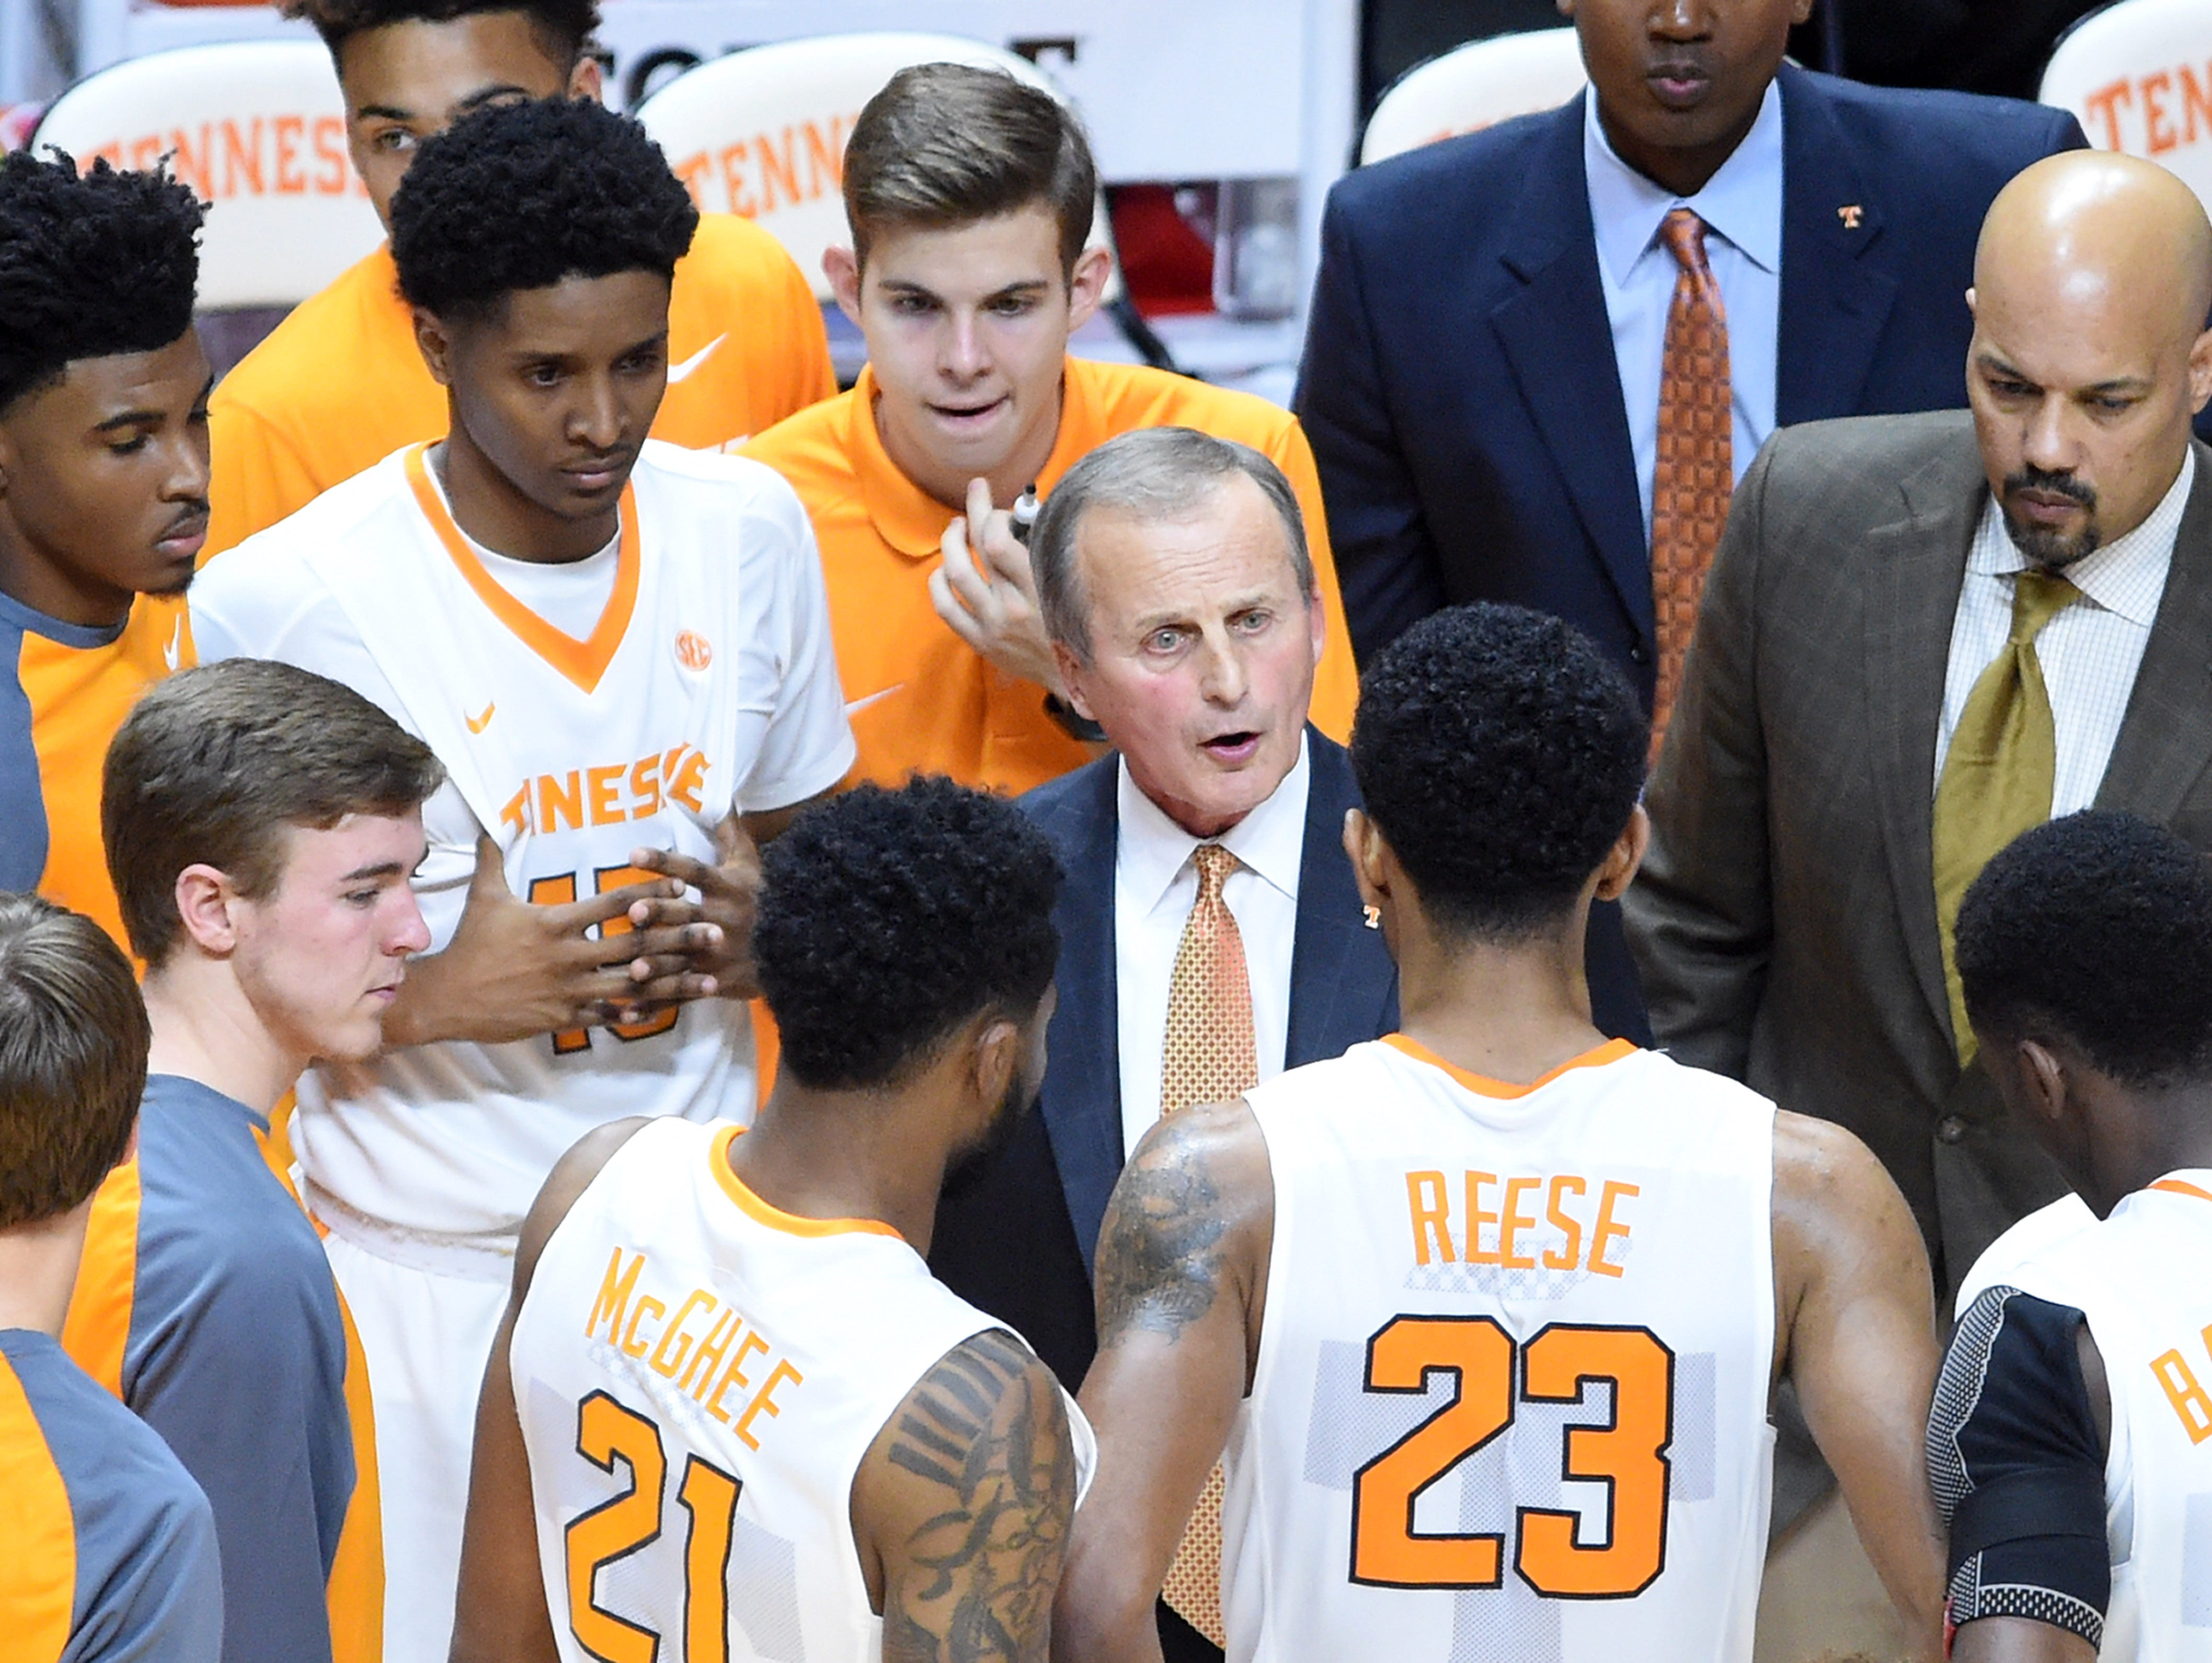 Tennessee coach Rick Barnes gathers players in a huddle during the second half against Alabama-Huntsville on Nov. 6, 2015.